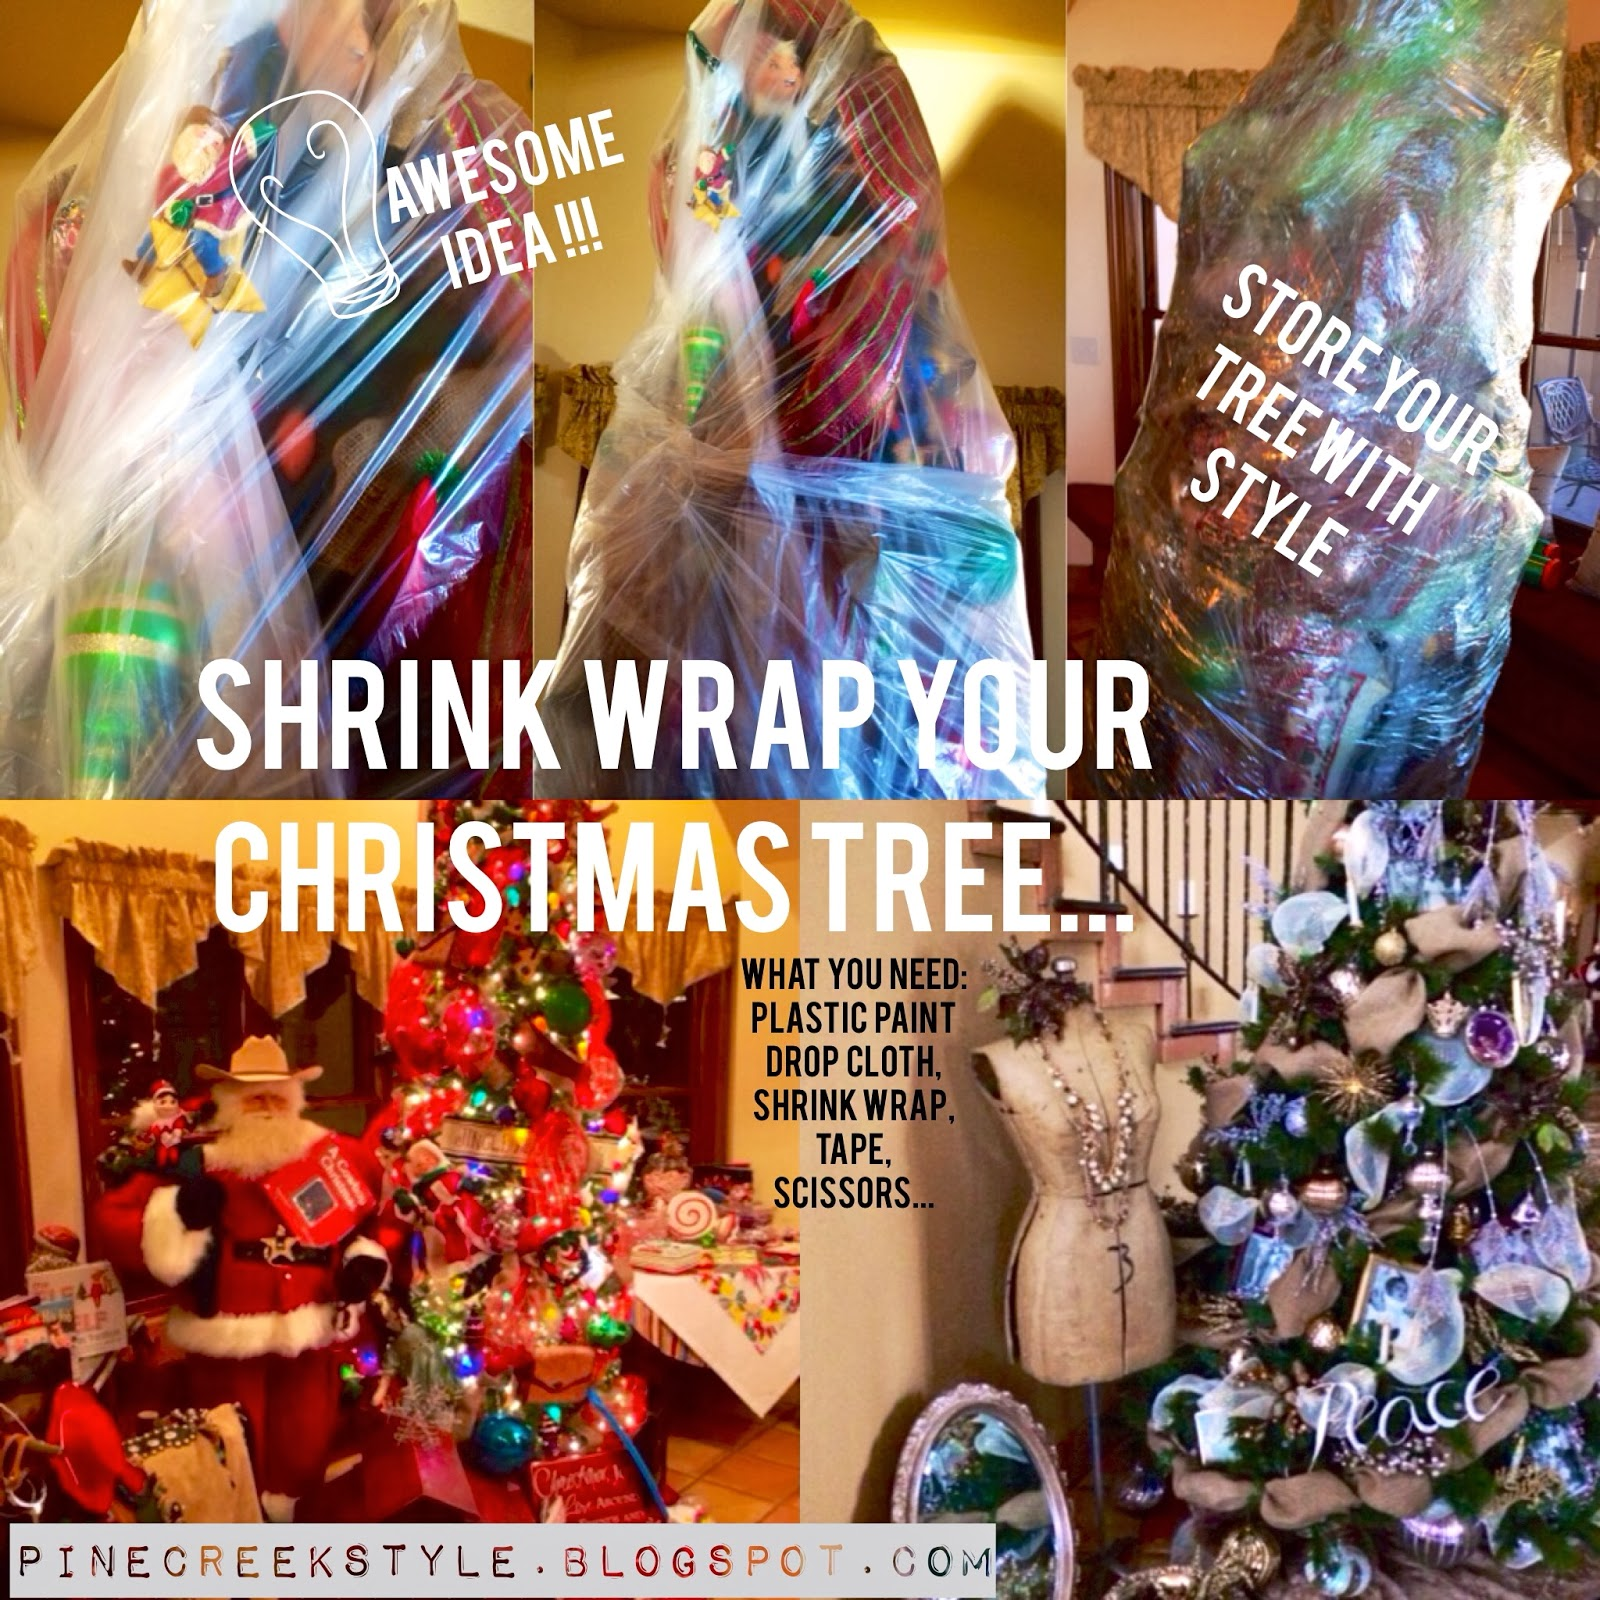 Trendy TreeHouse: Pack'n Up Christmas